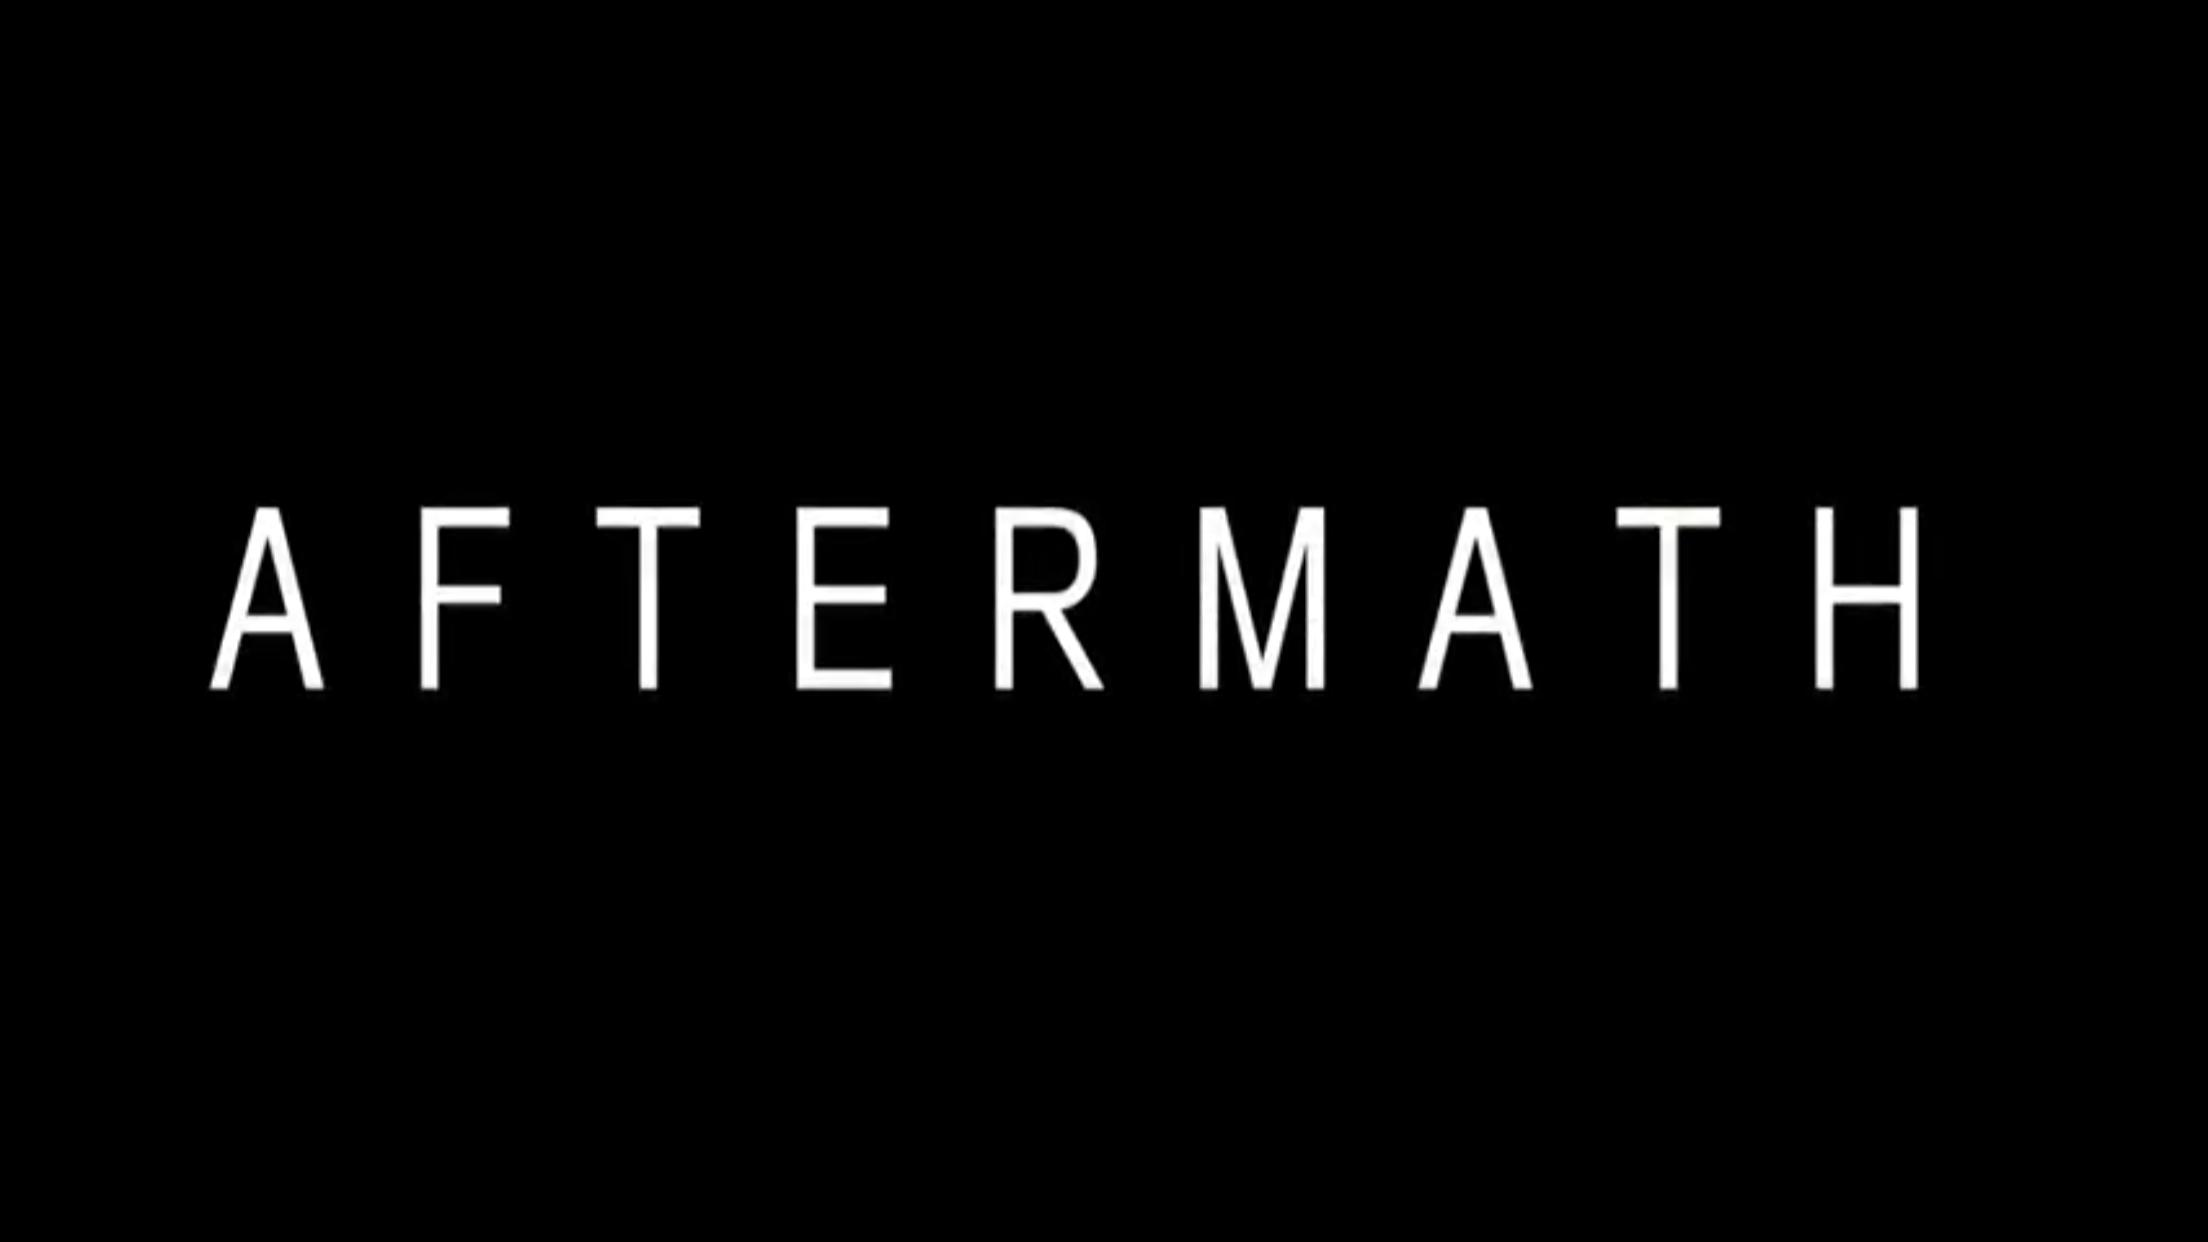 Aftermath (2009)